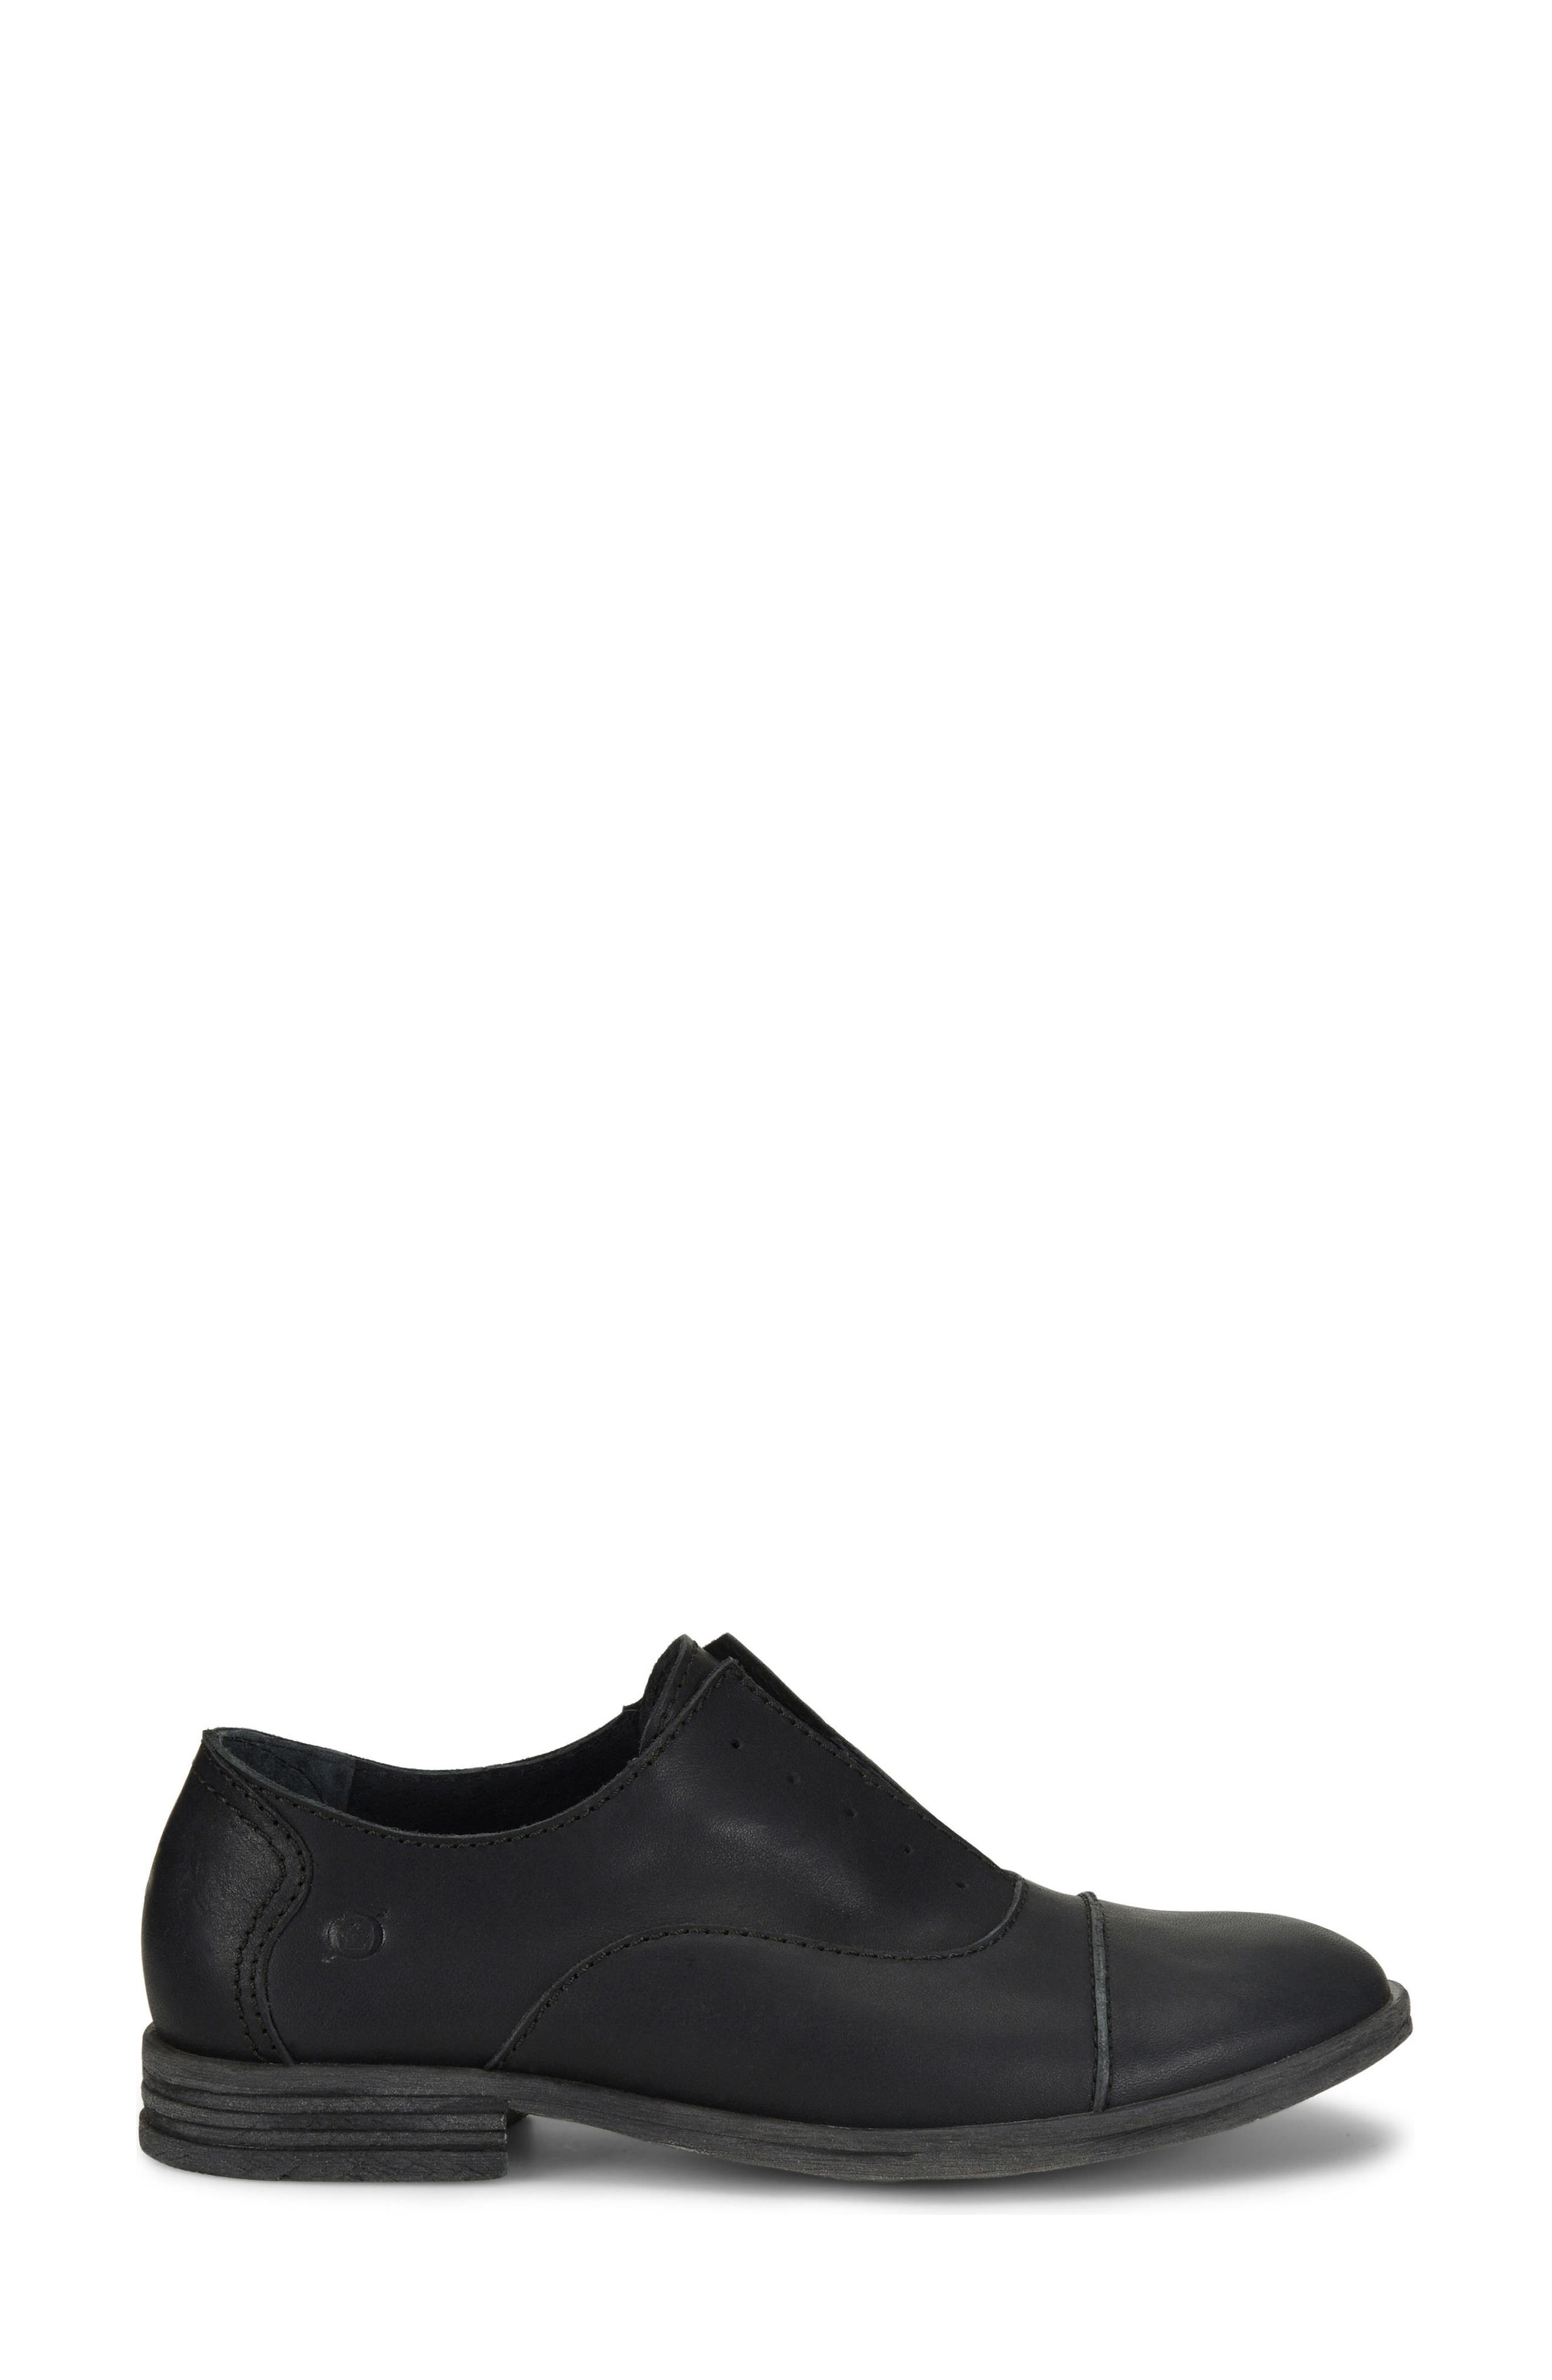 BØRN,                             Forato Slip-On Oxford,                             Alternate thumbnail 3, color,                             001